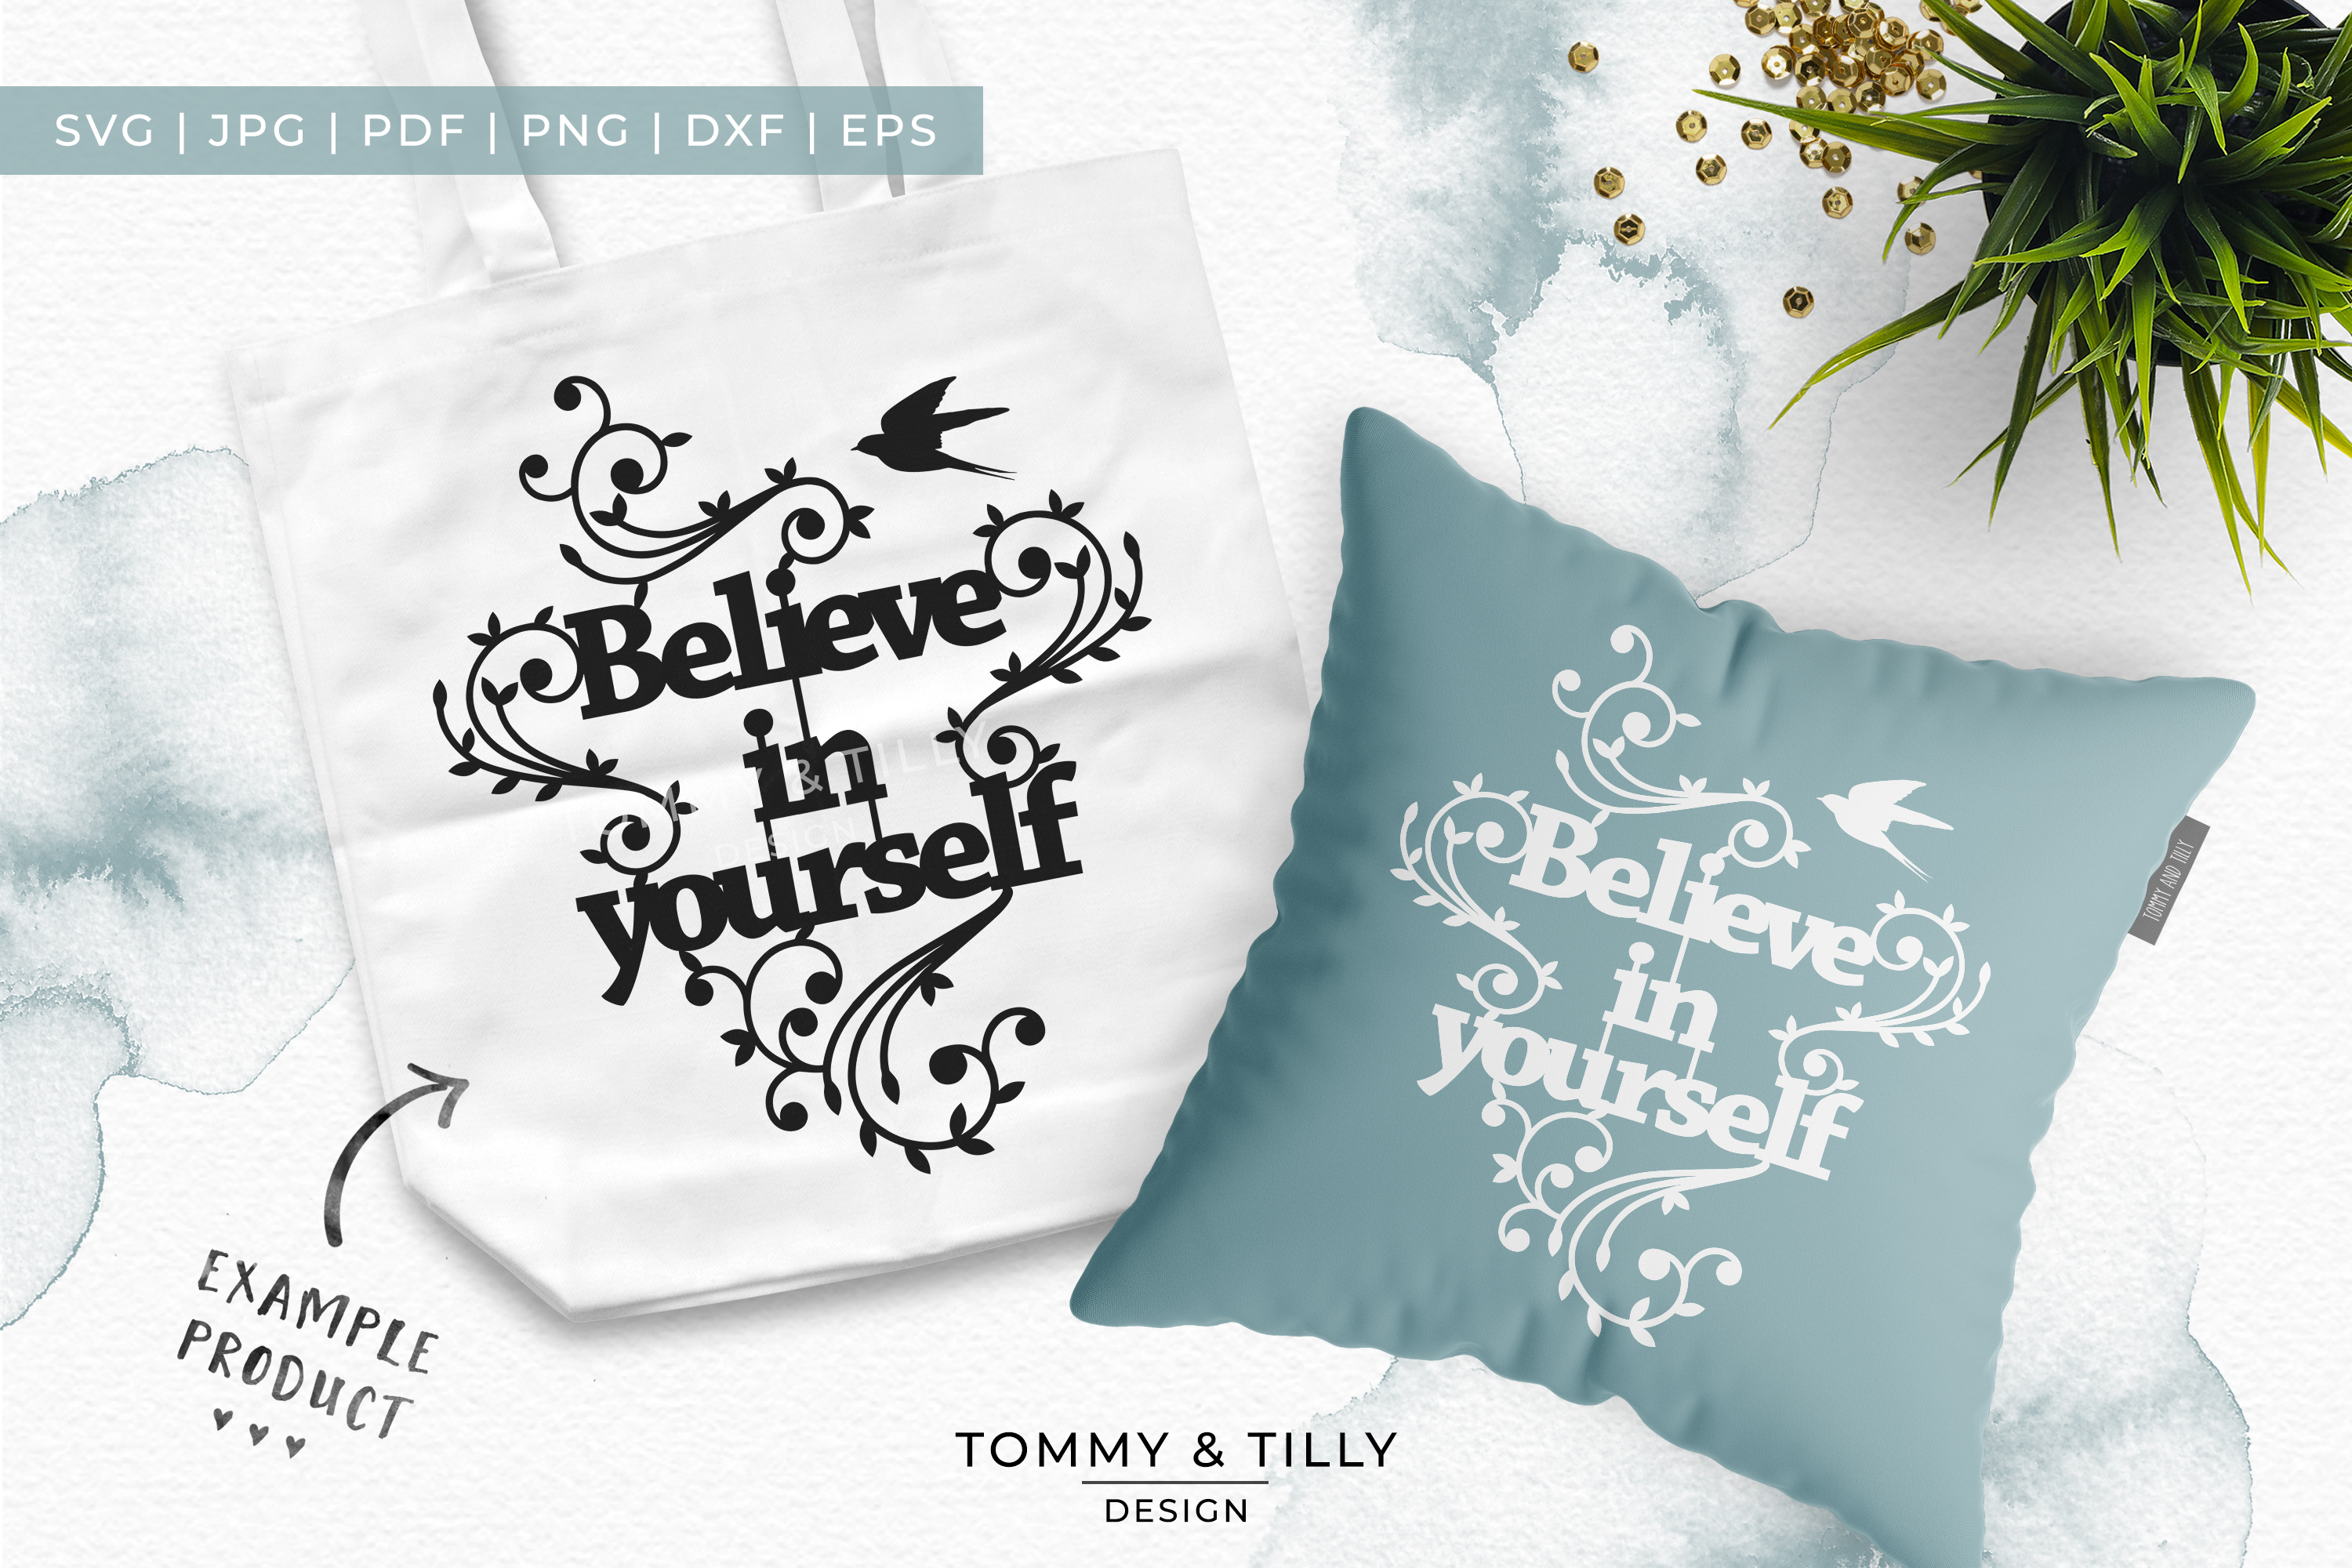 Believe in yourself - Papercut SVG EPS DXF PNG PDF example image 2